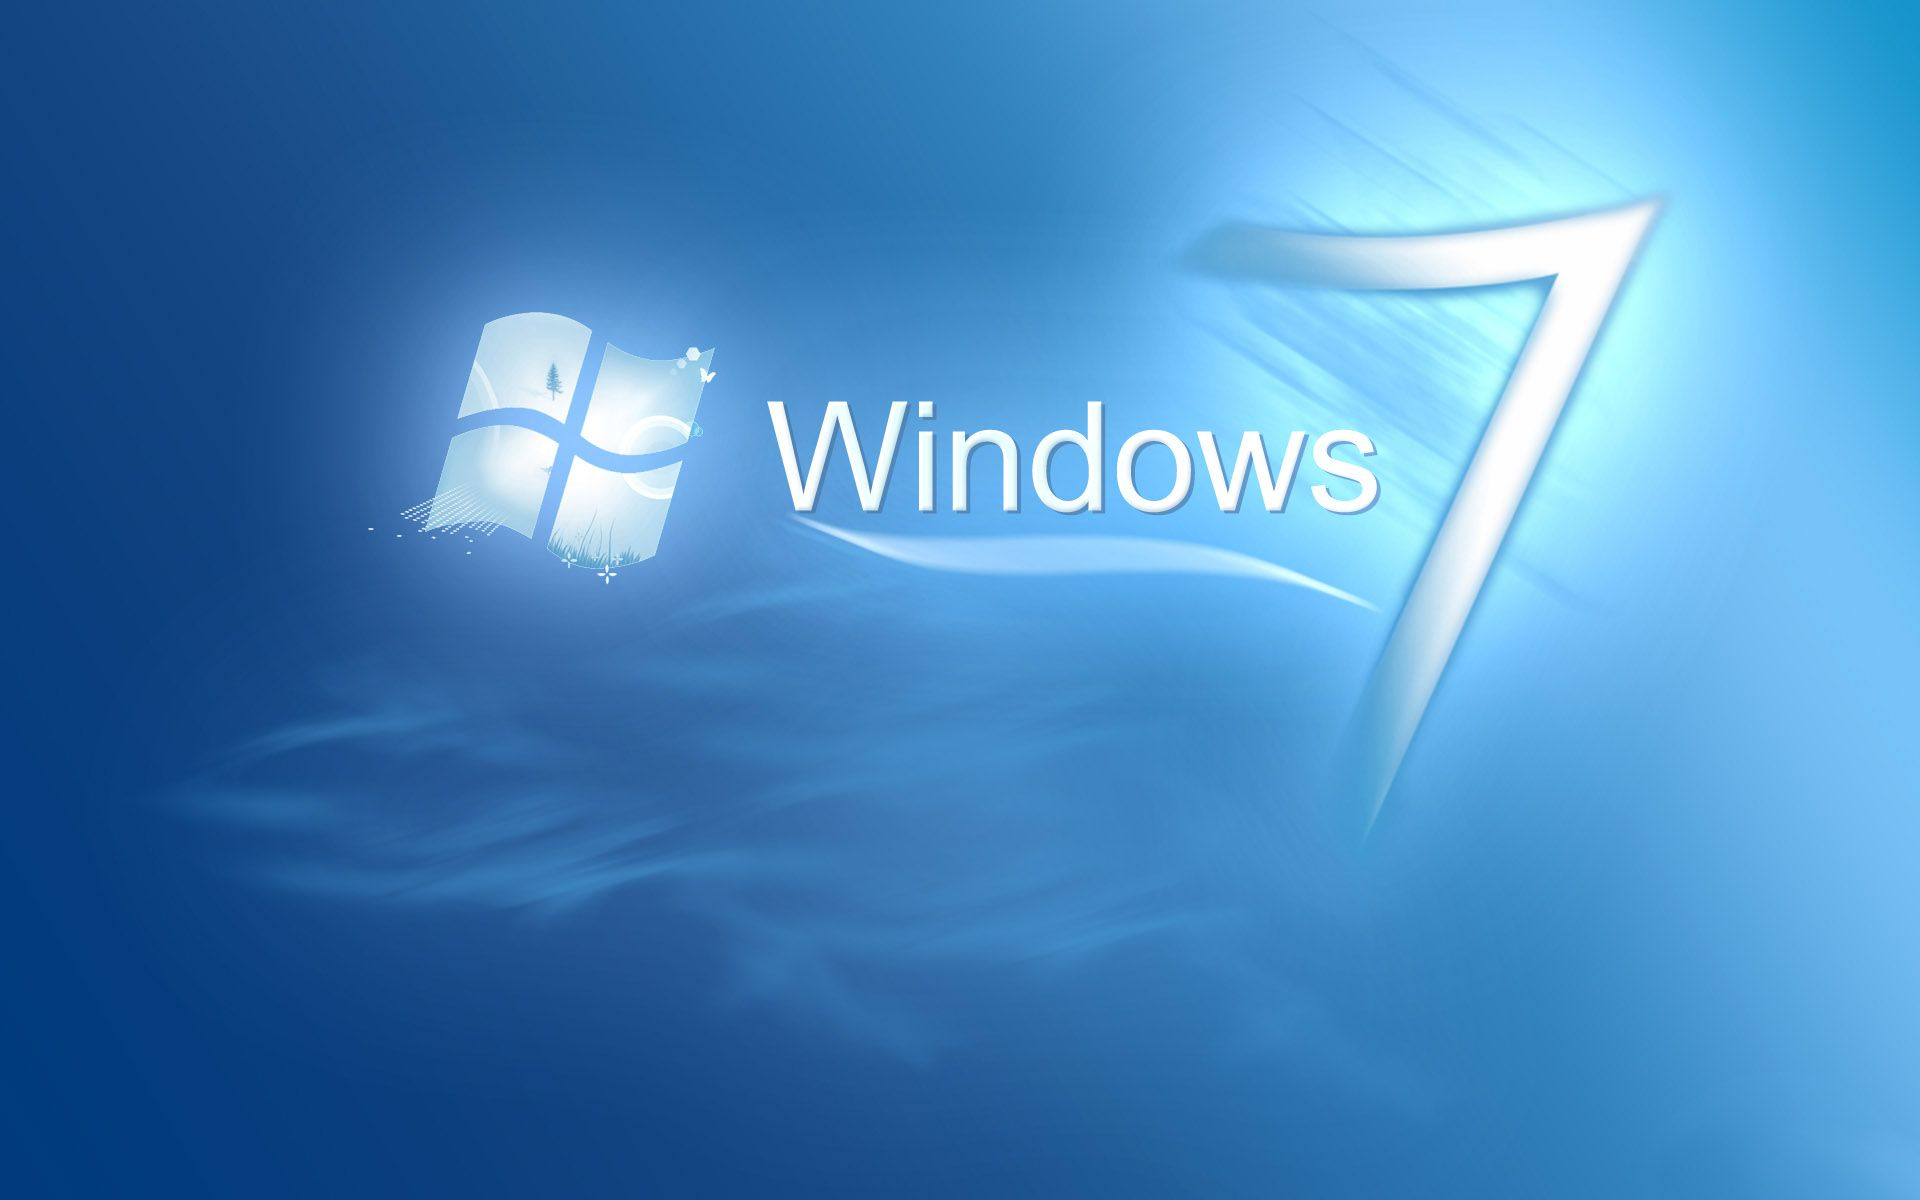 windows 7 professional wallpaper windows seven computers wallpapers hd wallpapers